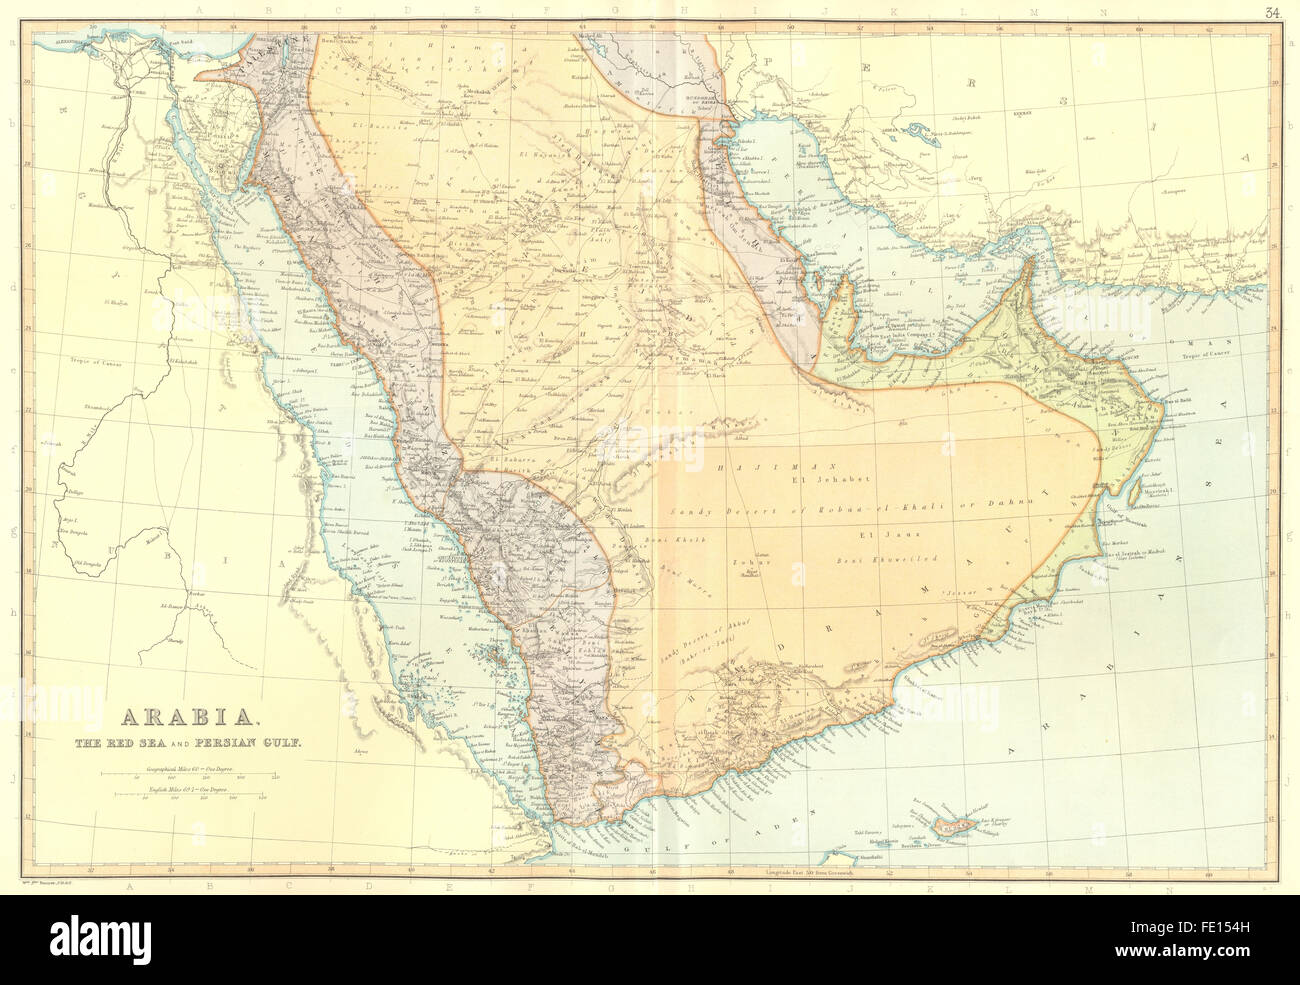 ARABIA RED SEA PERSIAN GULF Aden Oman Qatar UAE Saudi BLACKIE